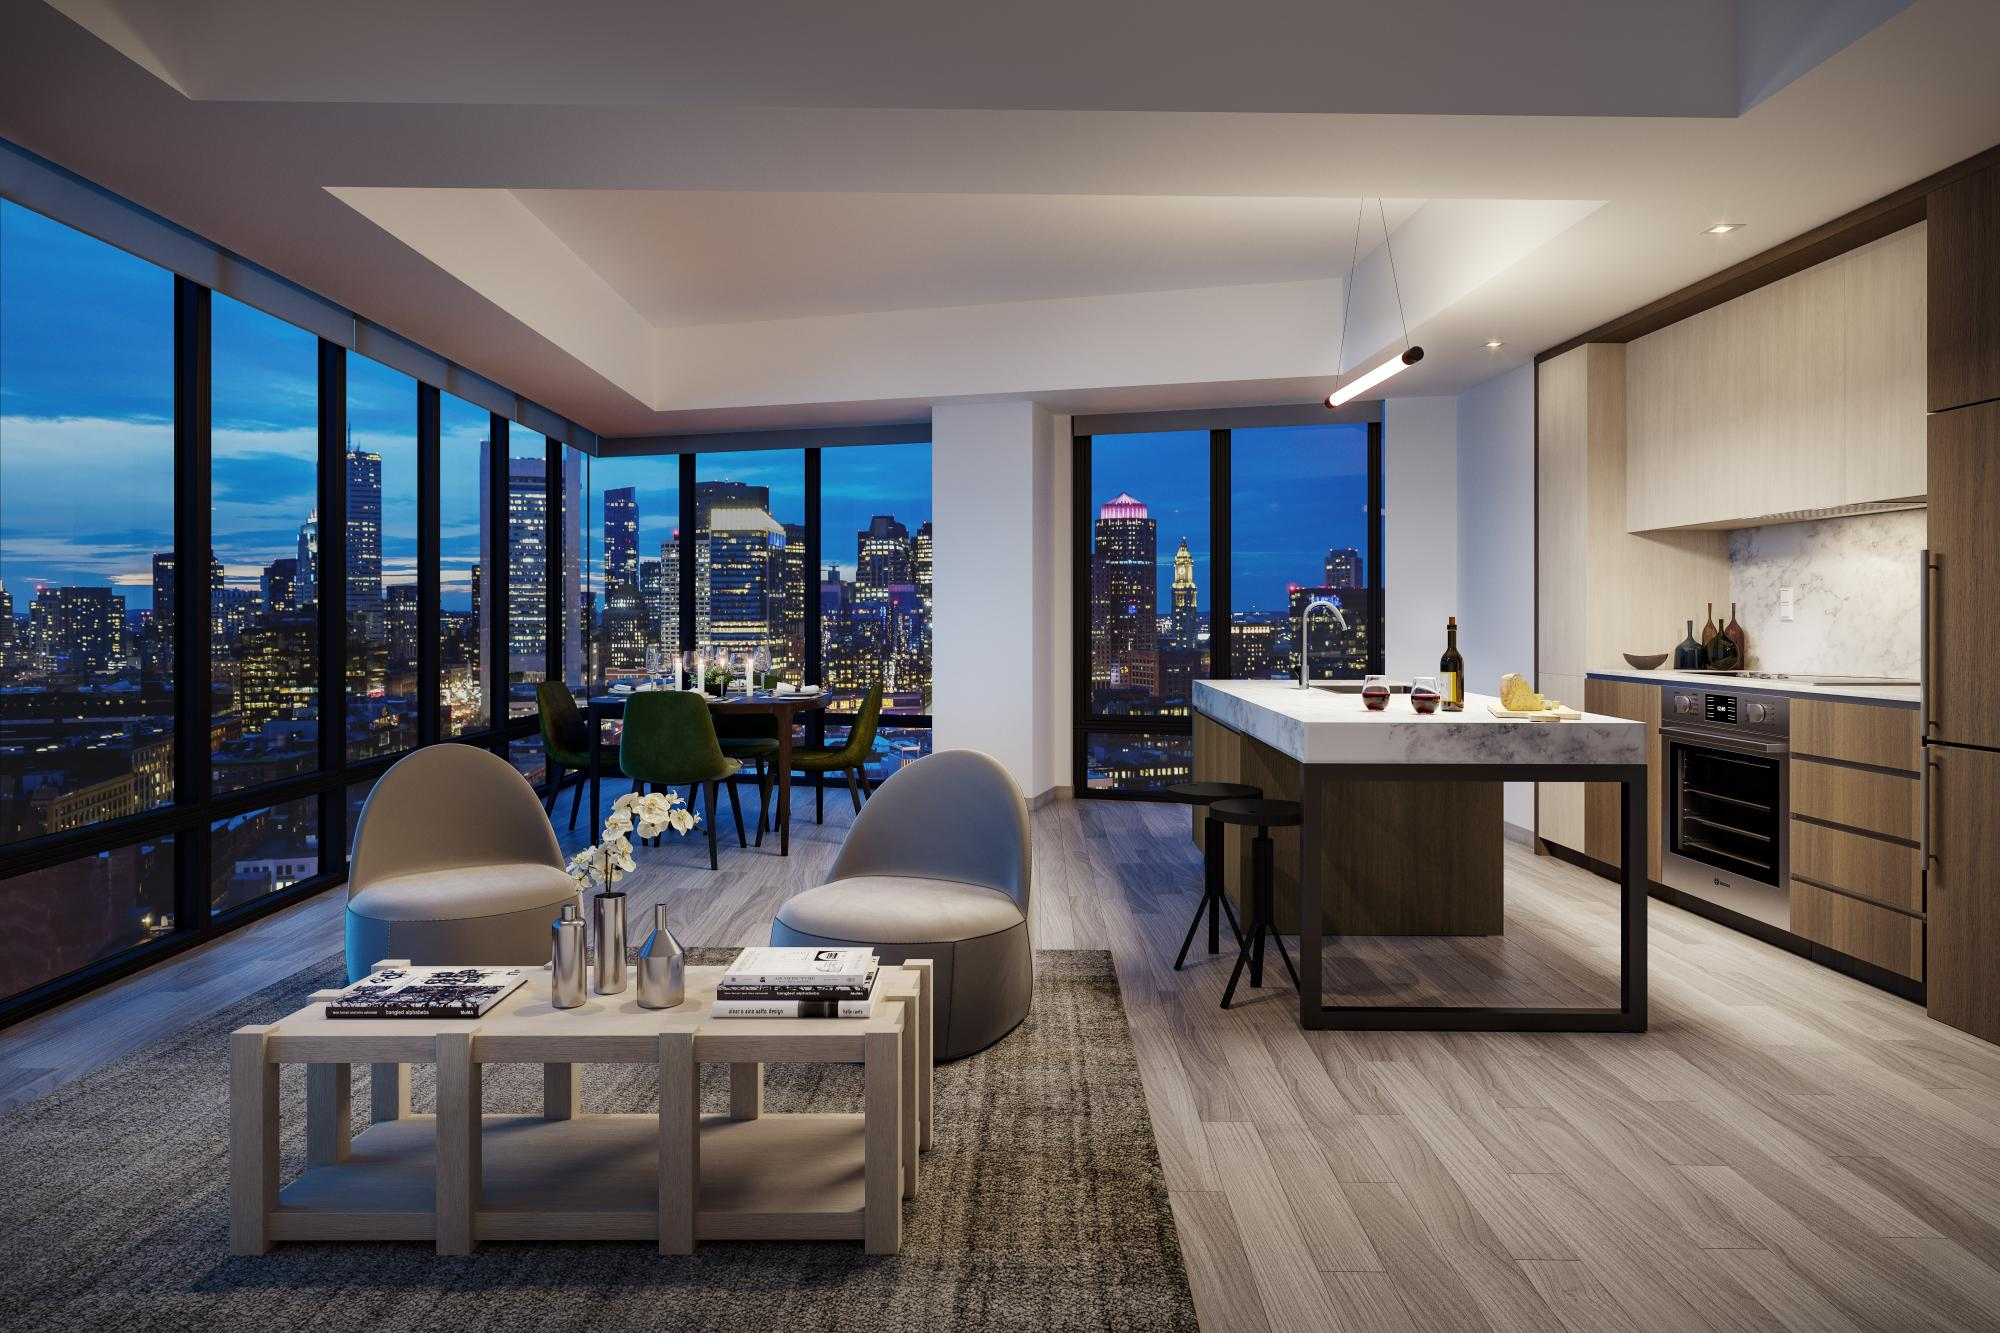 How To Find Cheap Apartments In Boston, Massachusetts